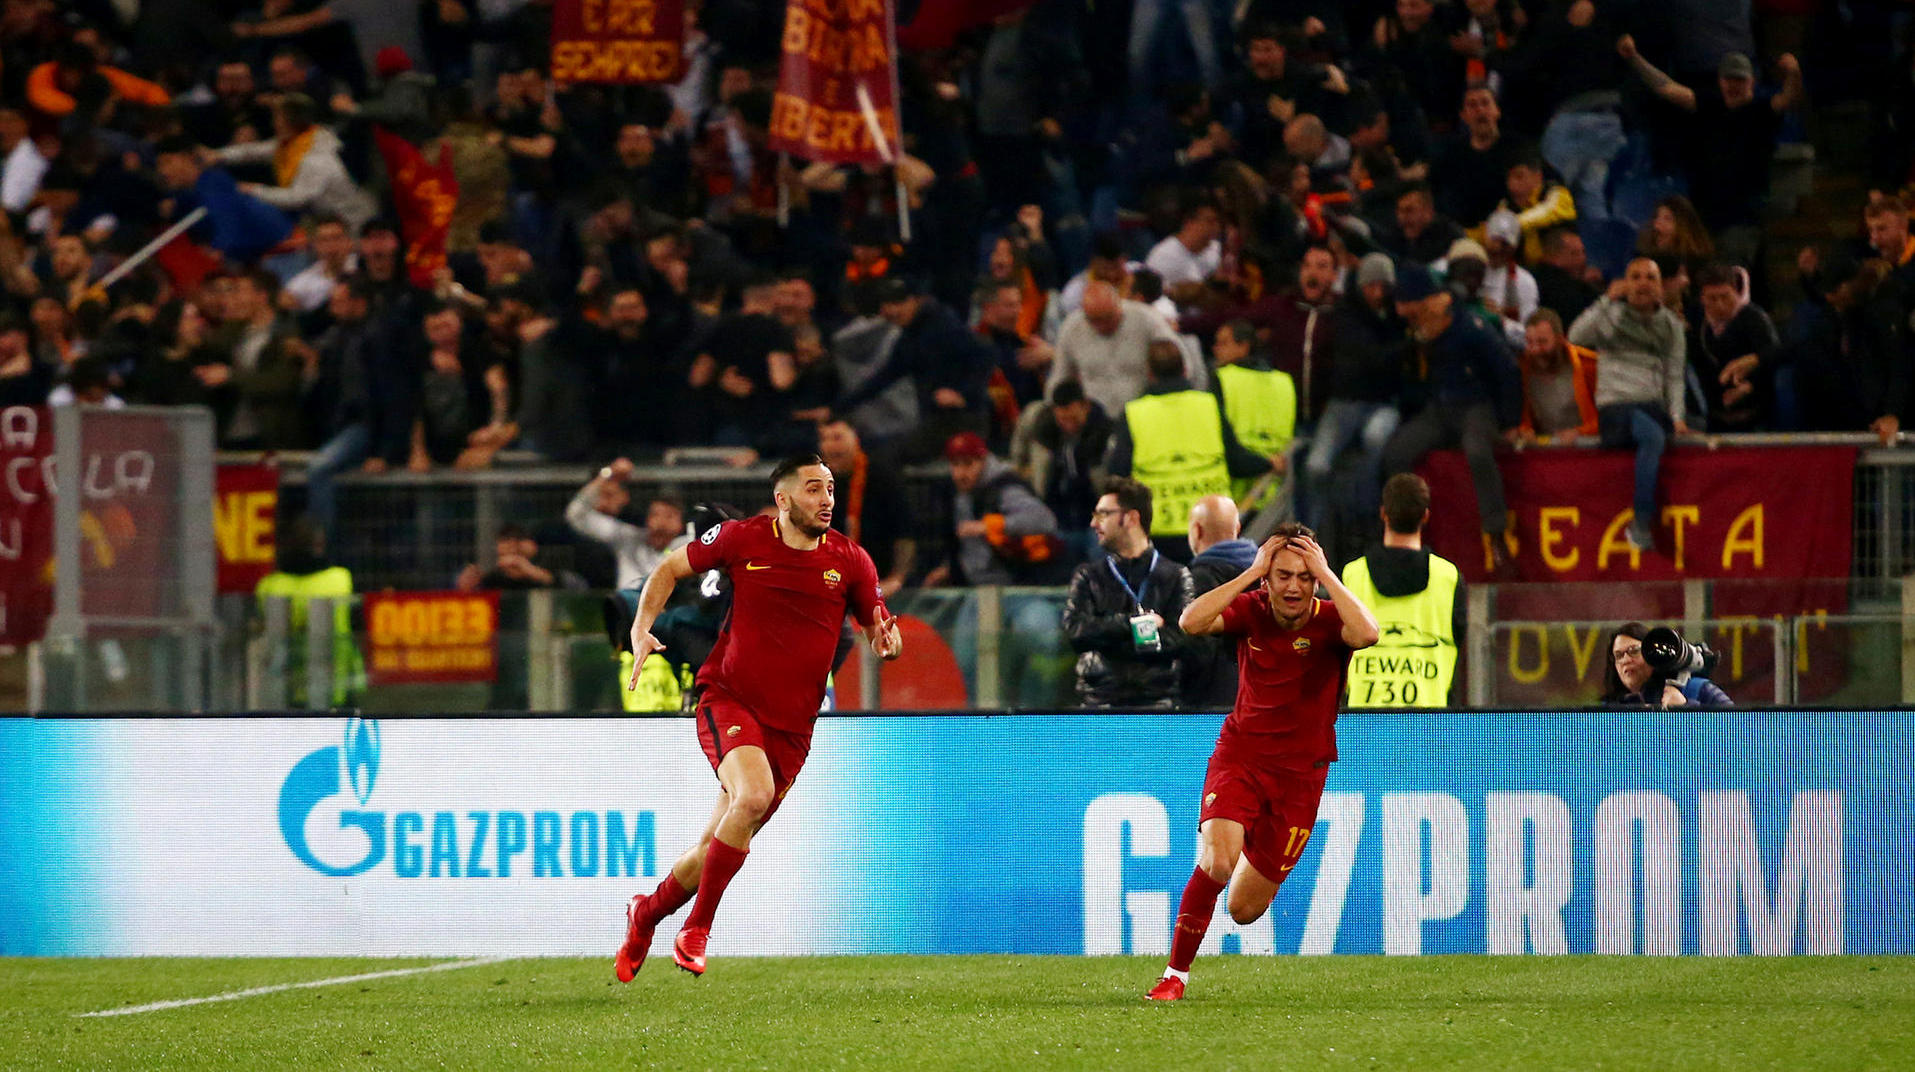 AS Rom - Barcelona: Champions League im Live-Ticker. Roma's Konstantinos Manolas feiert das dritte Tor mit Cengiz Under.  (Quelle: Tony Gentile)